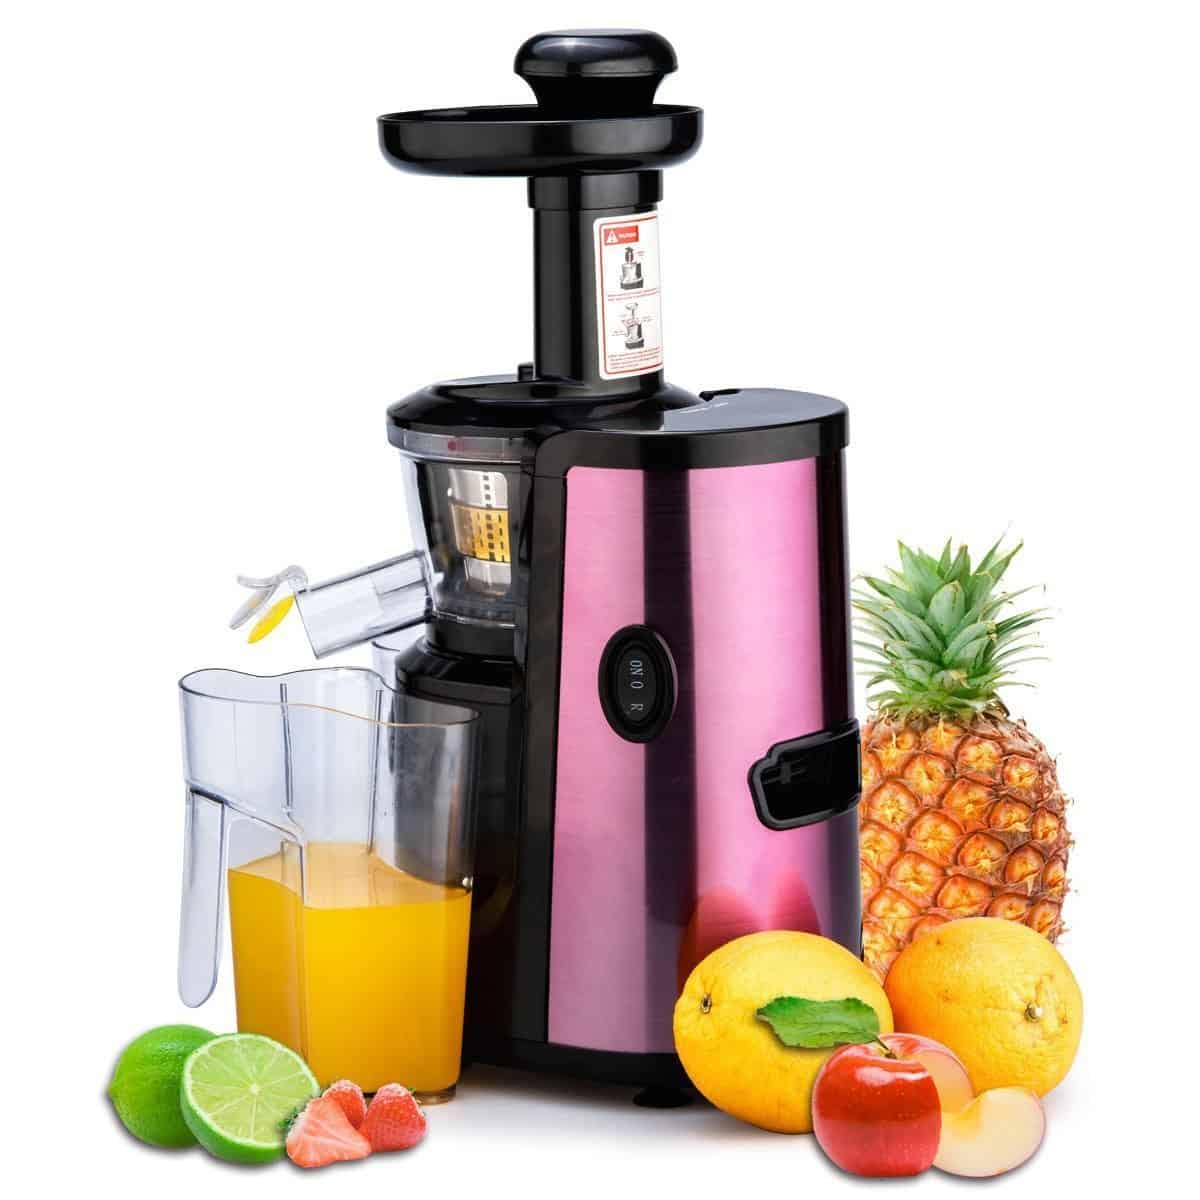 Slow Juicer Reviews 2015 : CUH Slow Juicer Review - Reviewify